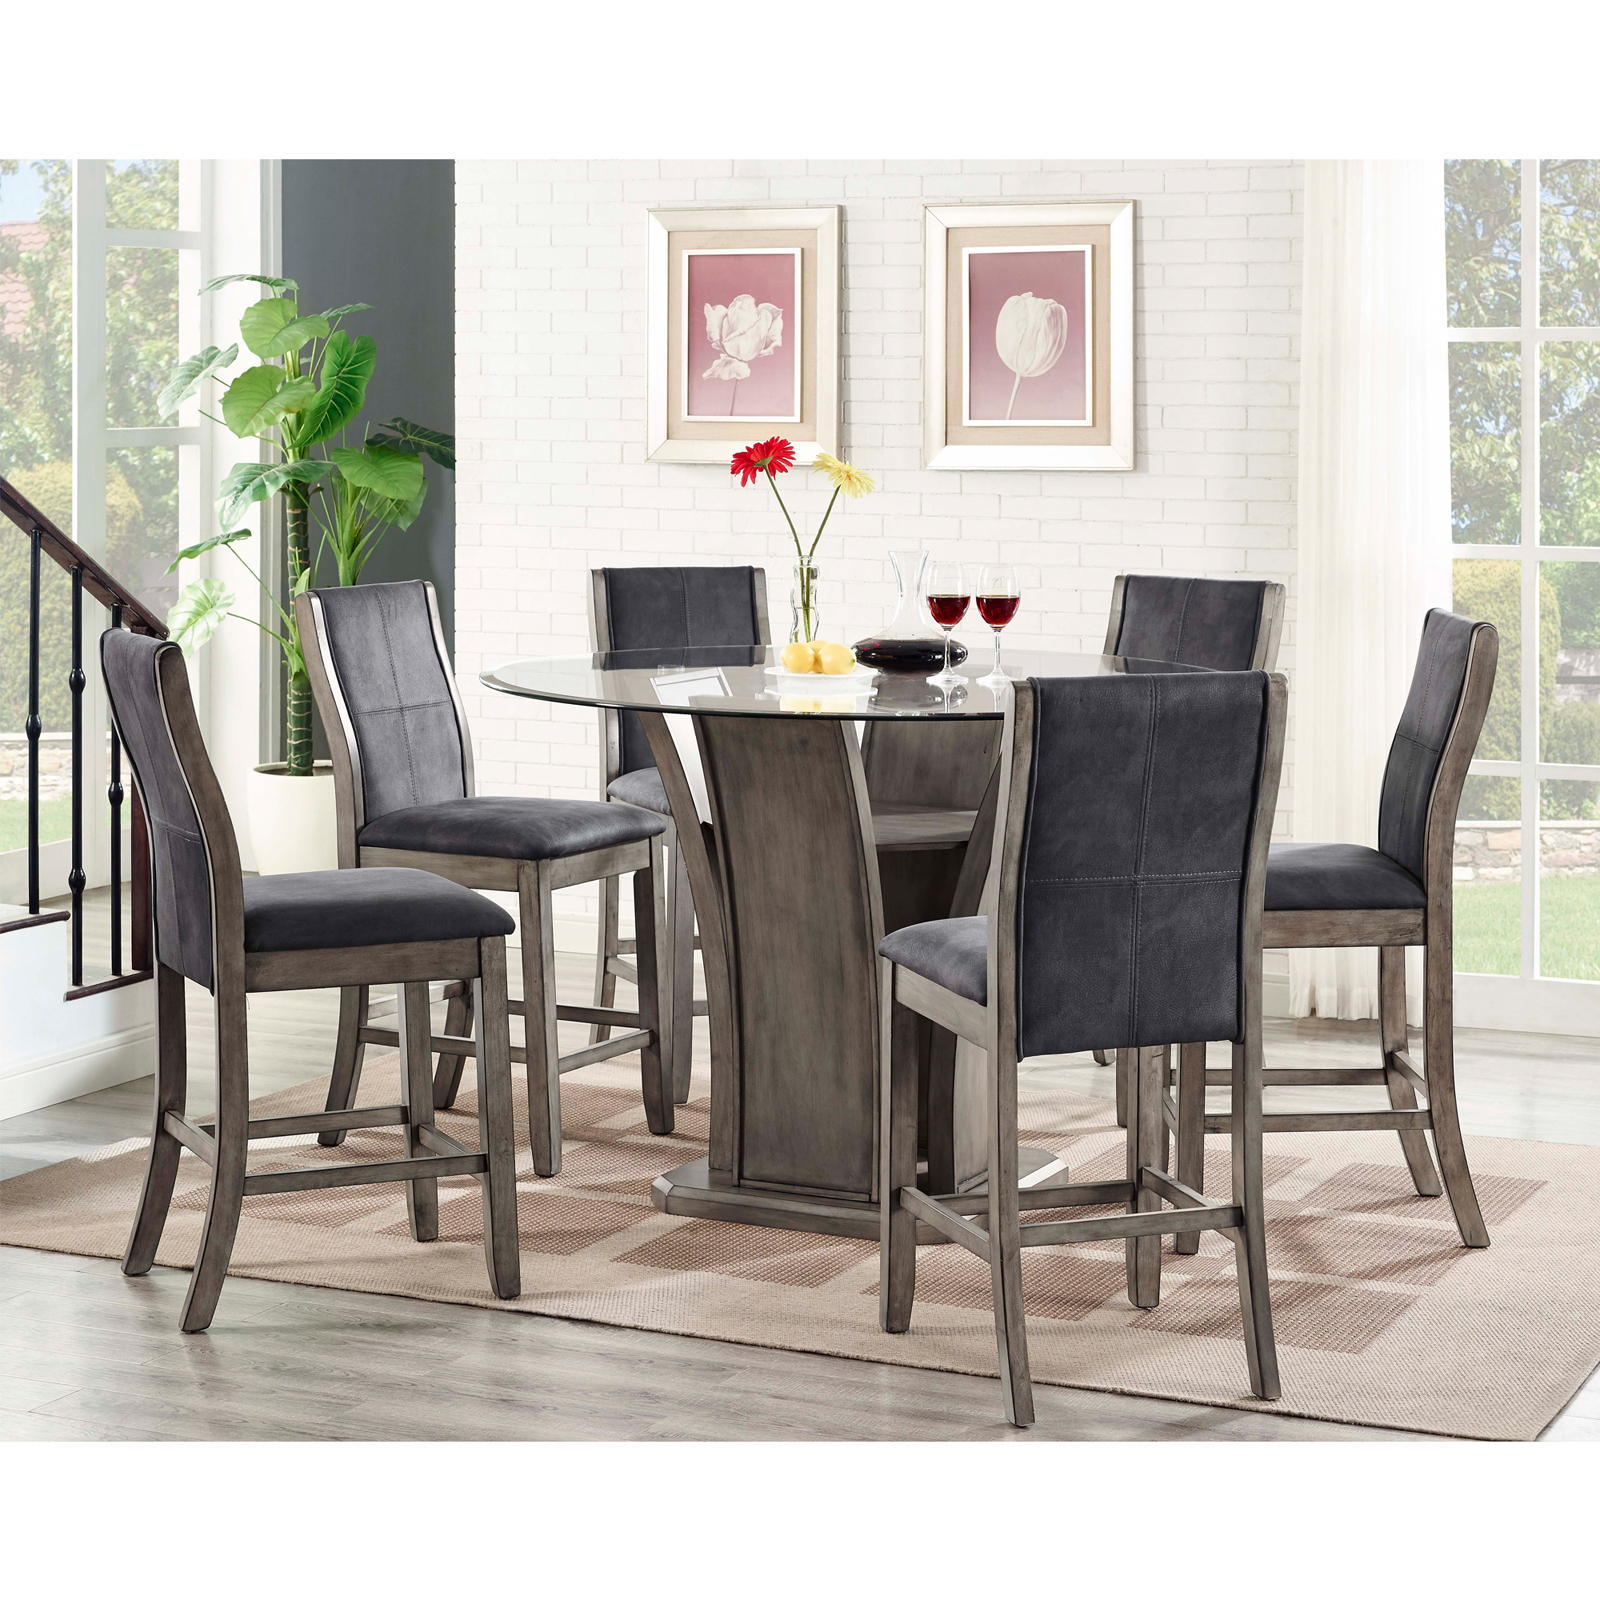 Picket House Furnishings Dylan 7 Piece Counter Height Dining Table Set